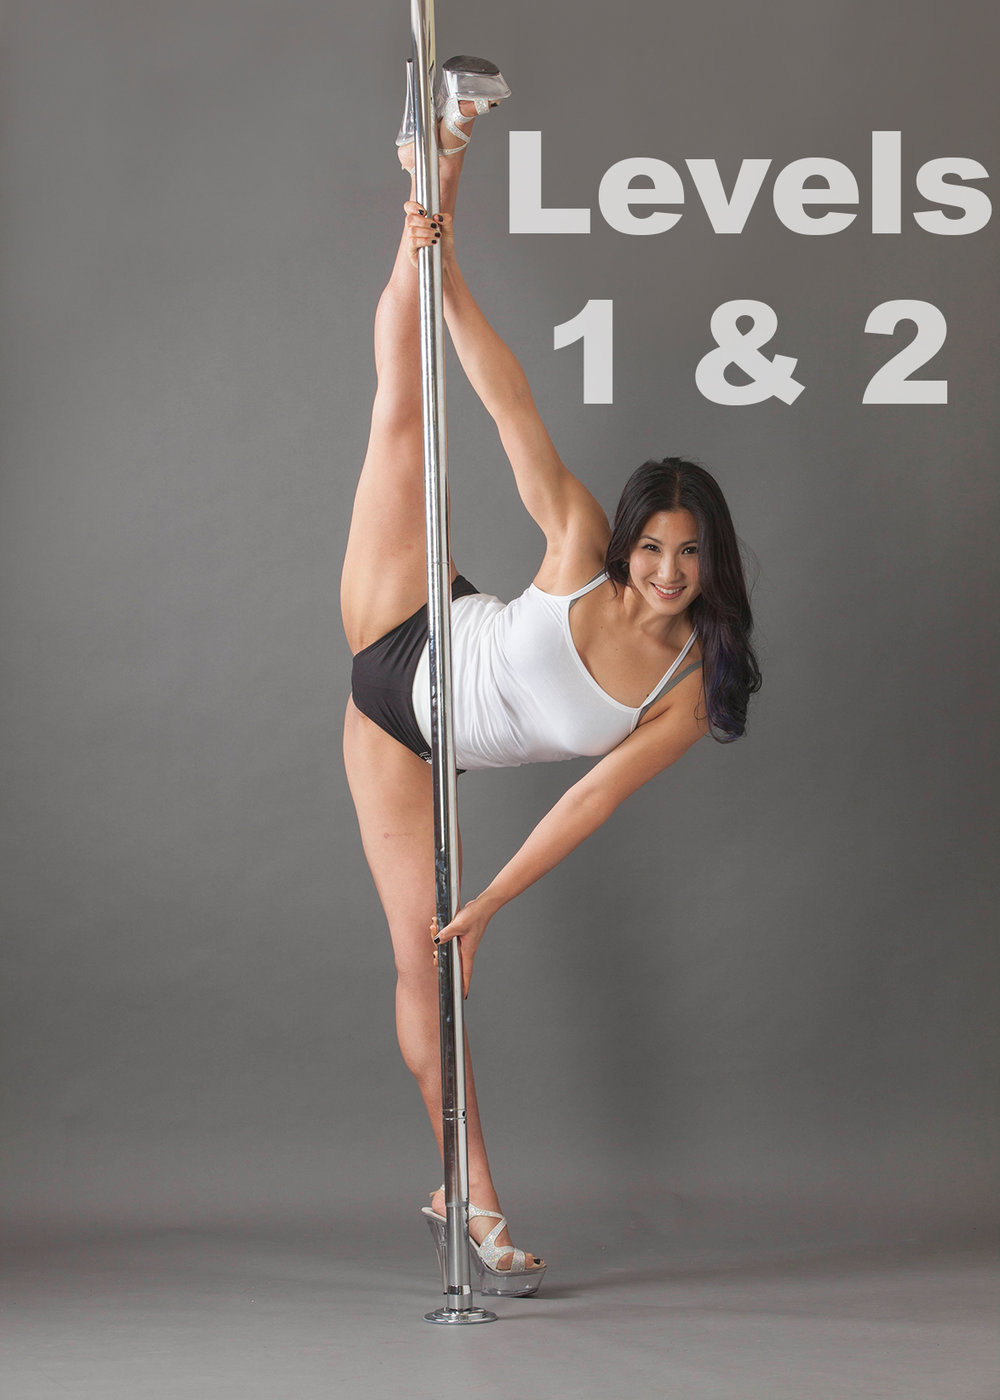 Level1and2.jpg